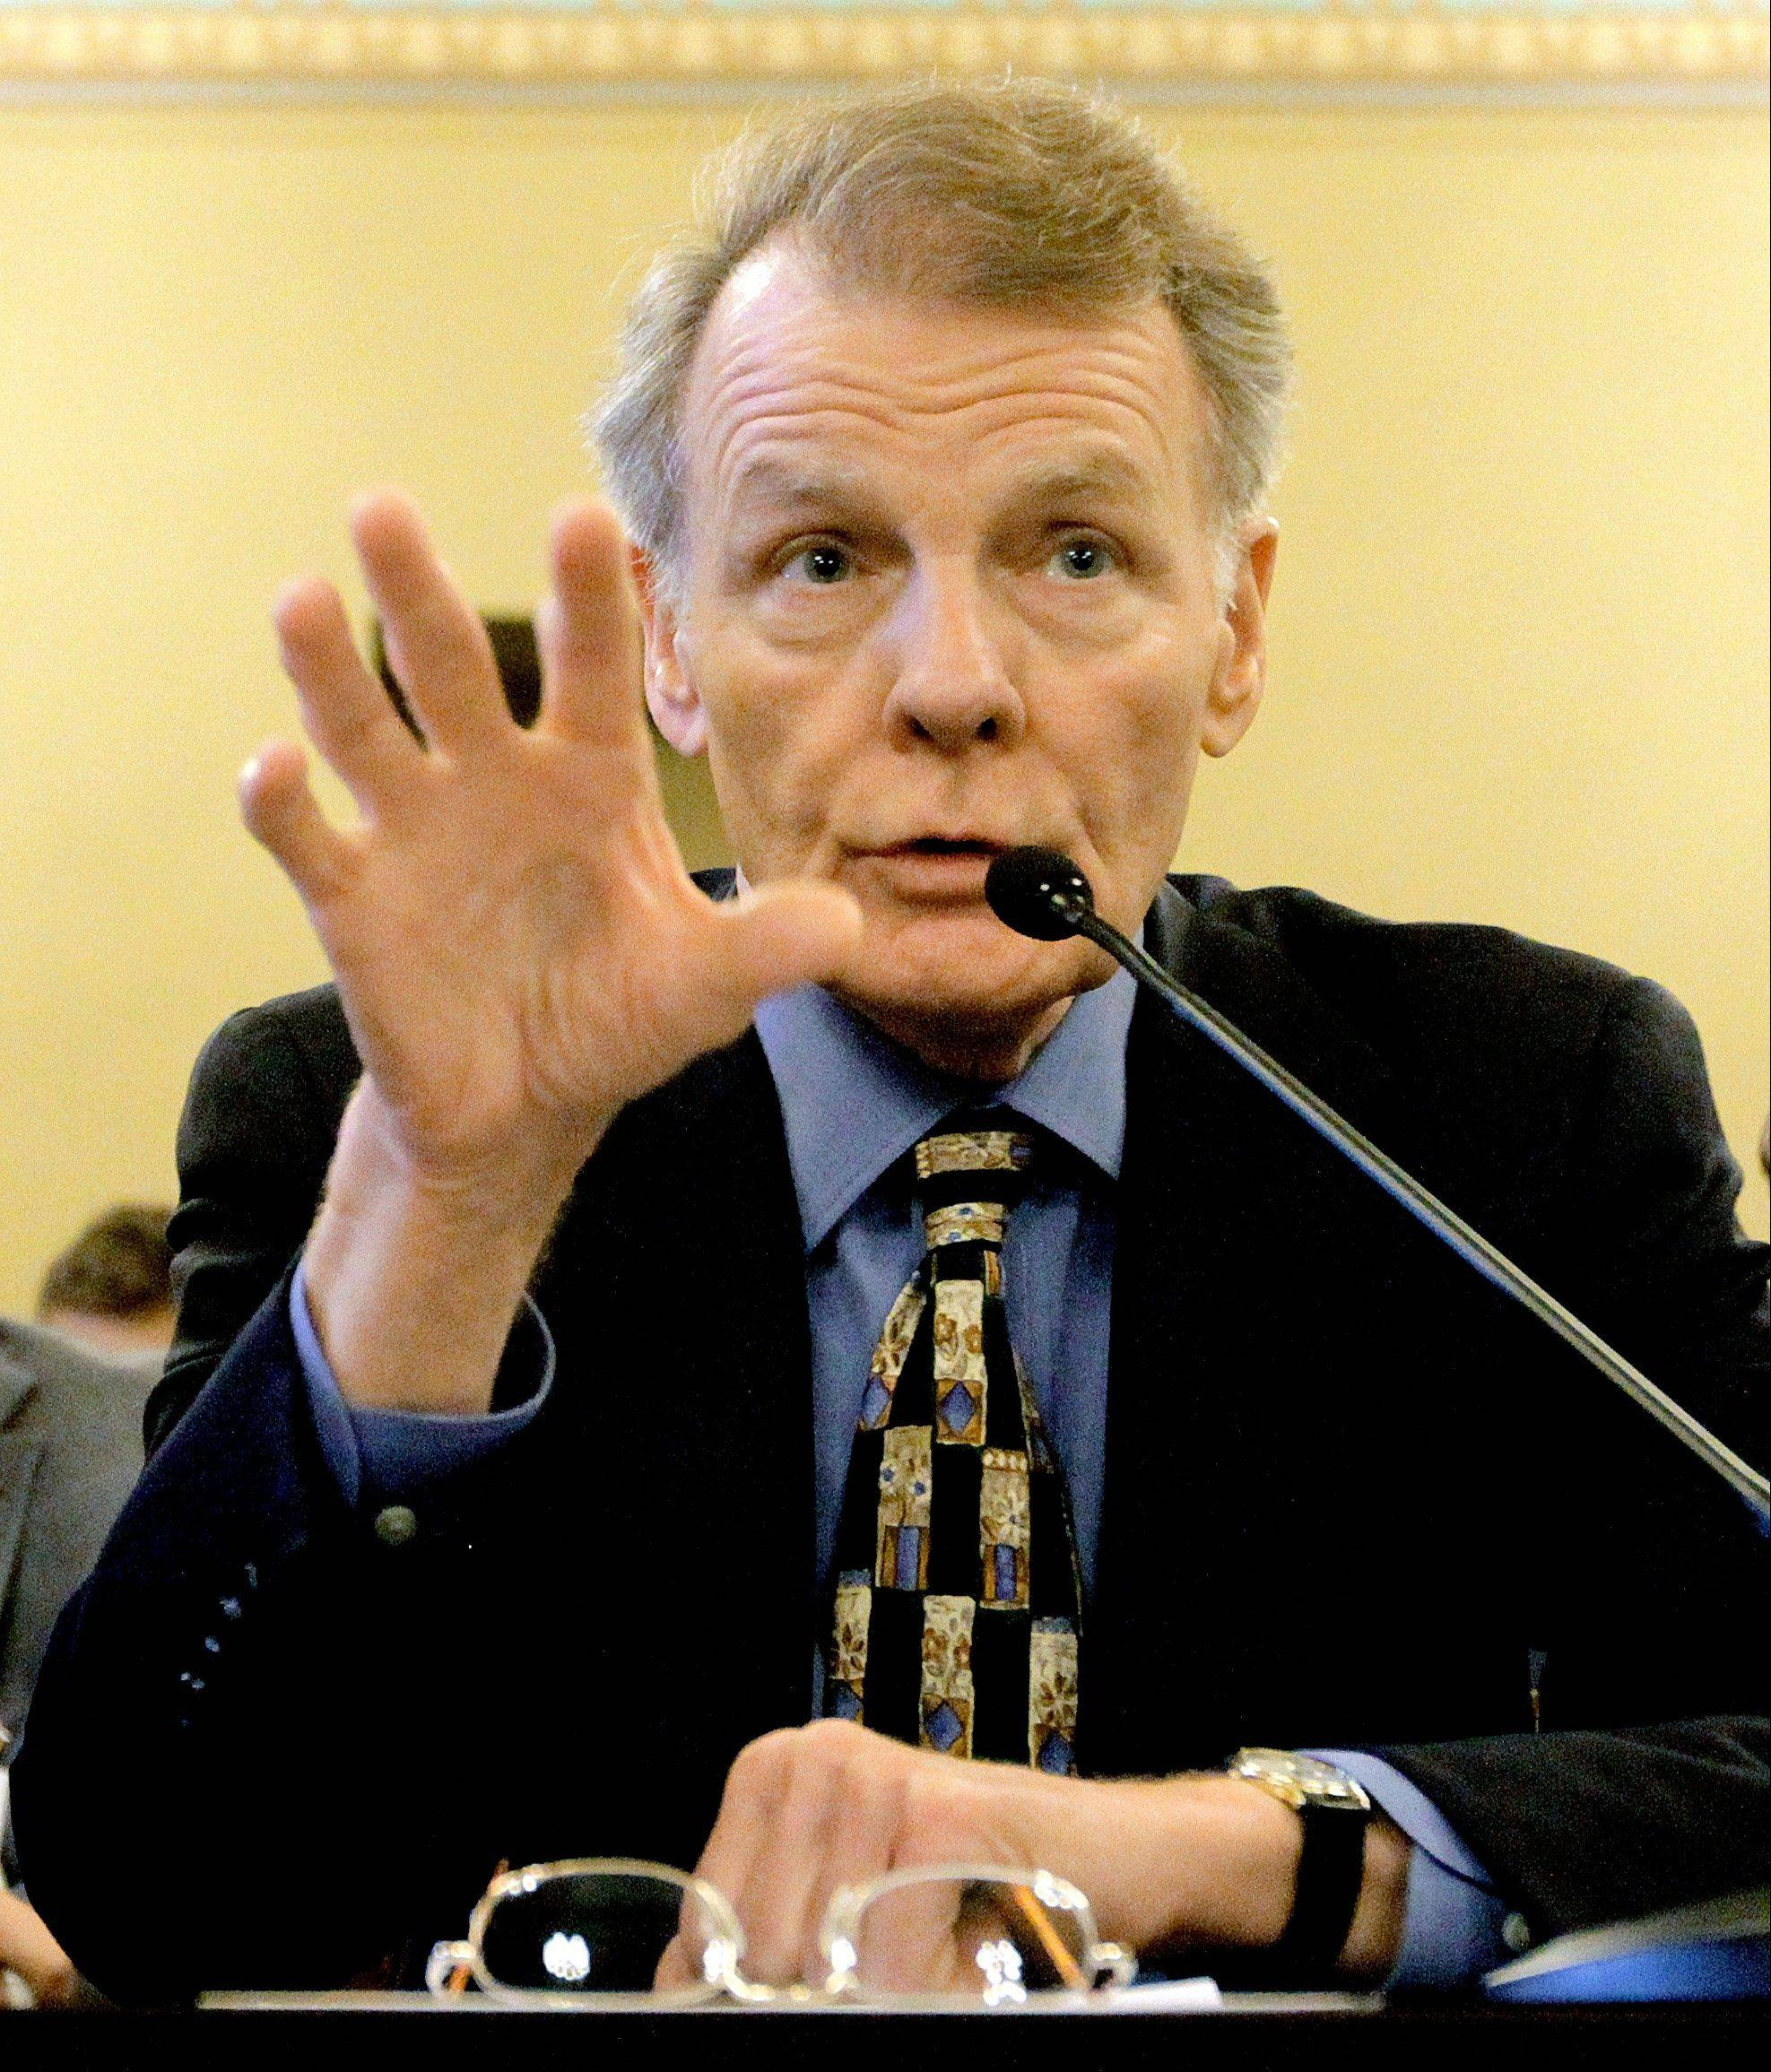 Illinois Speaker of the House Michael Madigan, D-Chicago, testifies during a House Personnel and Pensions Committee hearing at the Illinois State Capitol last month.